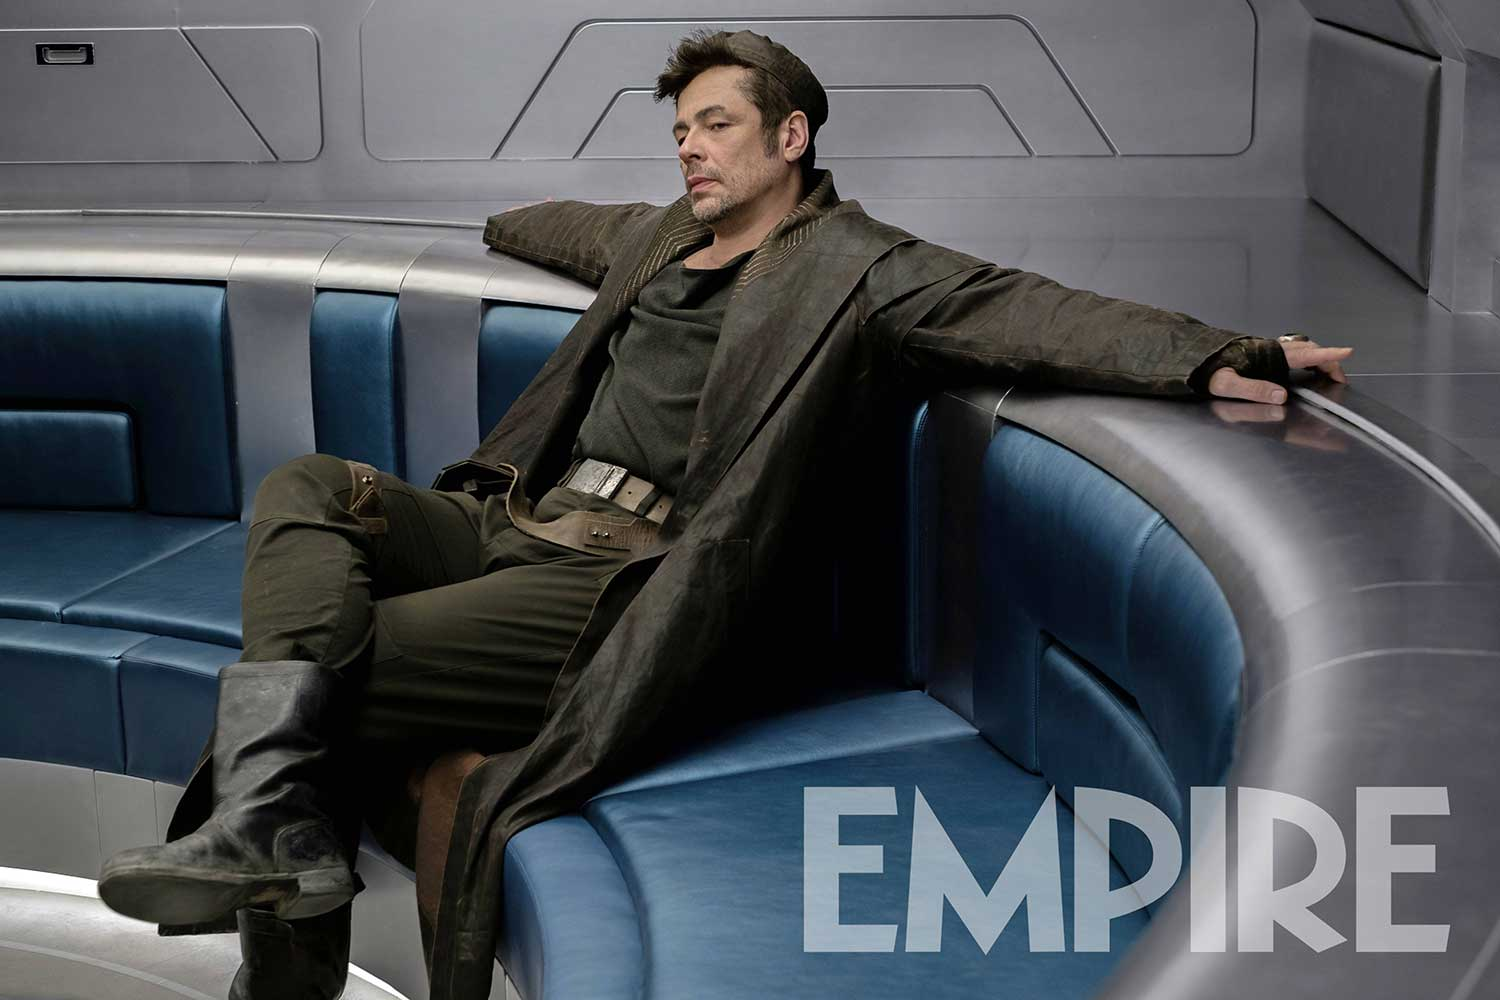 Benicio-Del-Toro-Star-Wars-The-Last-Jedi